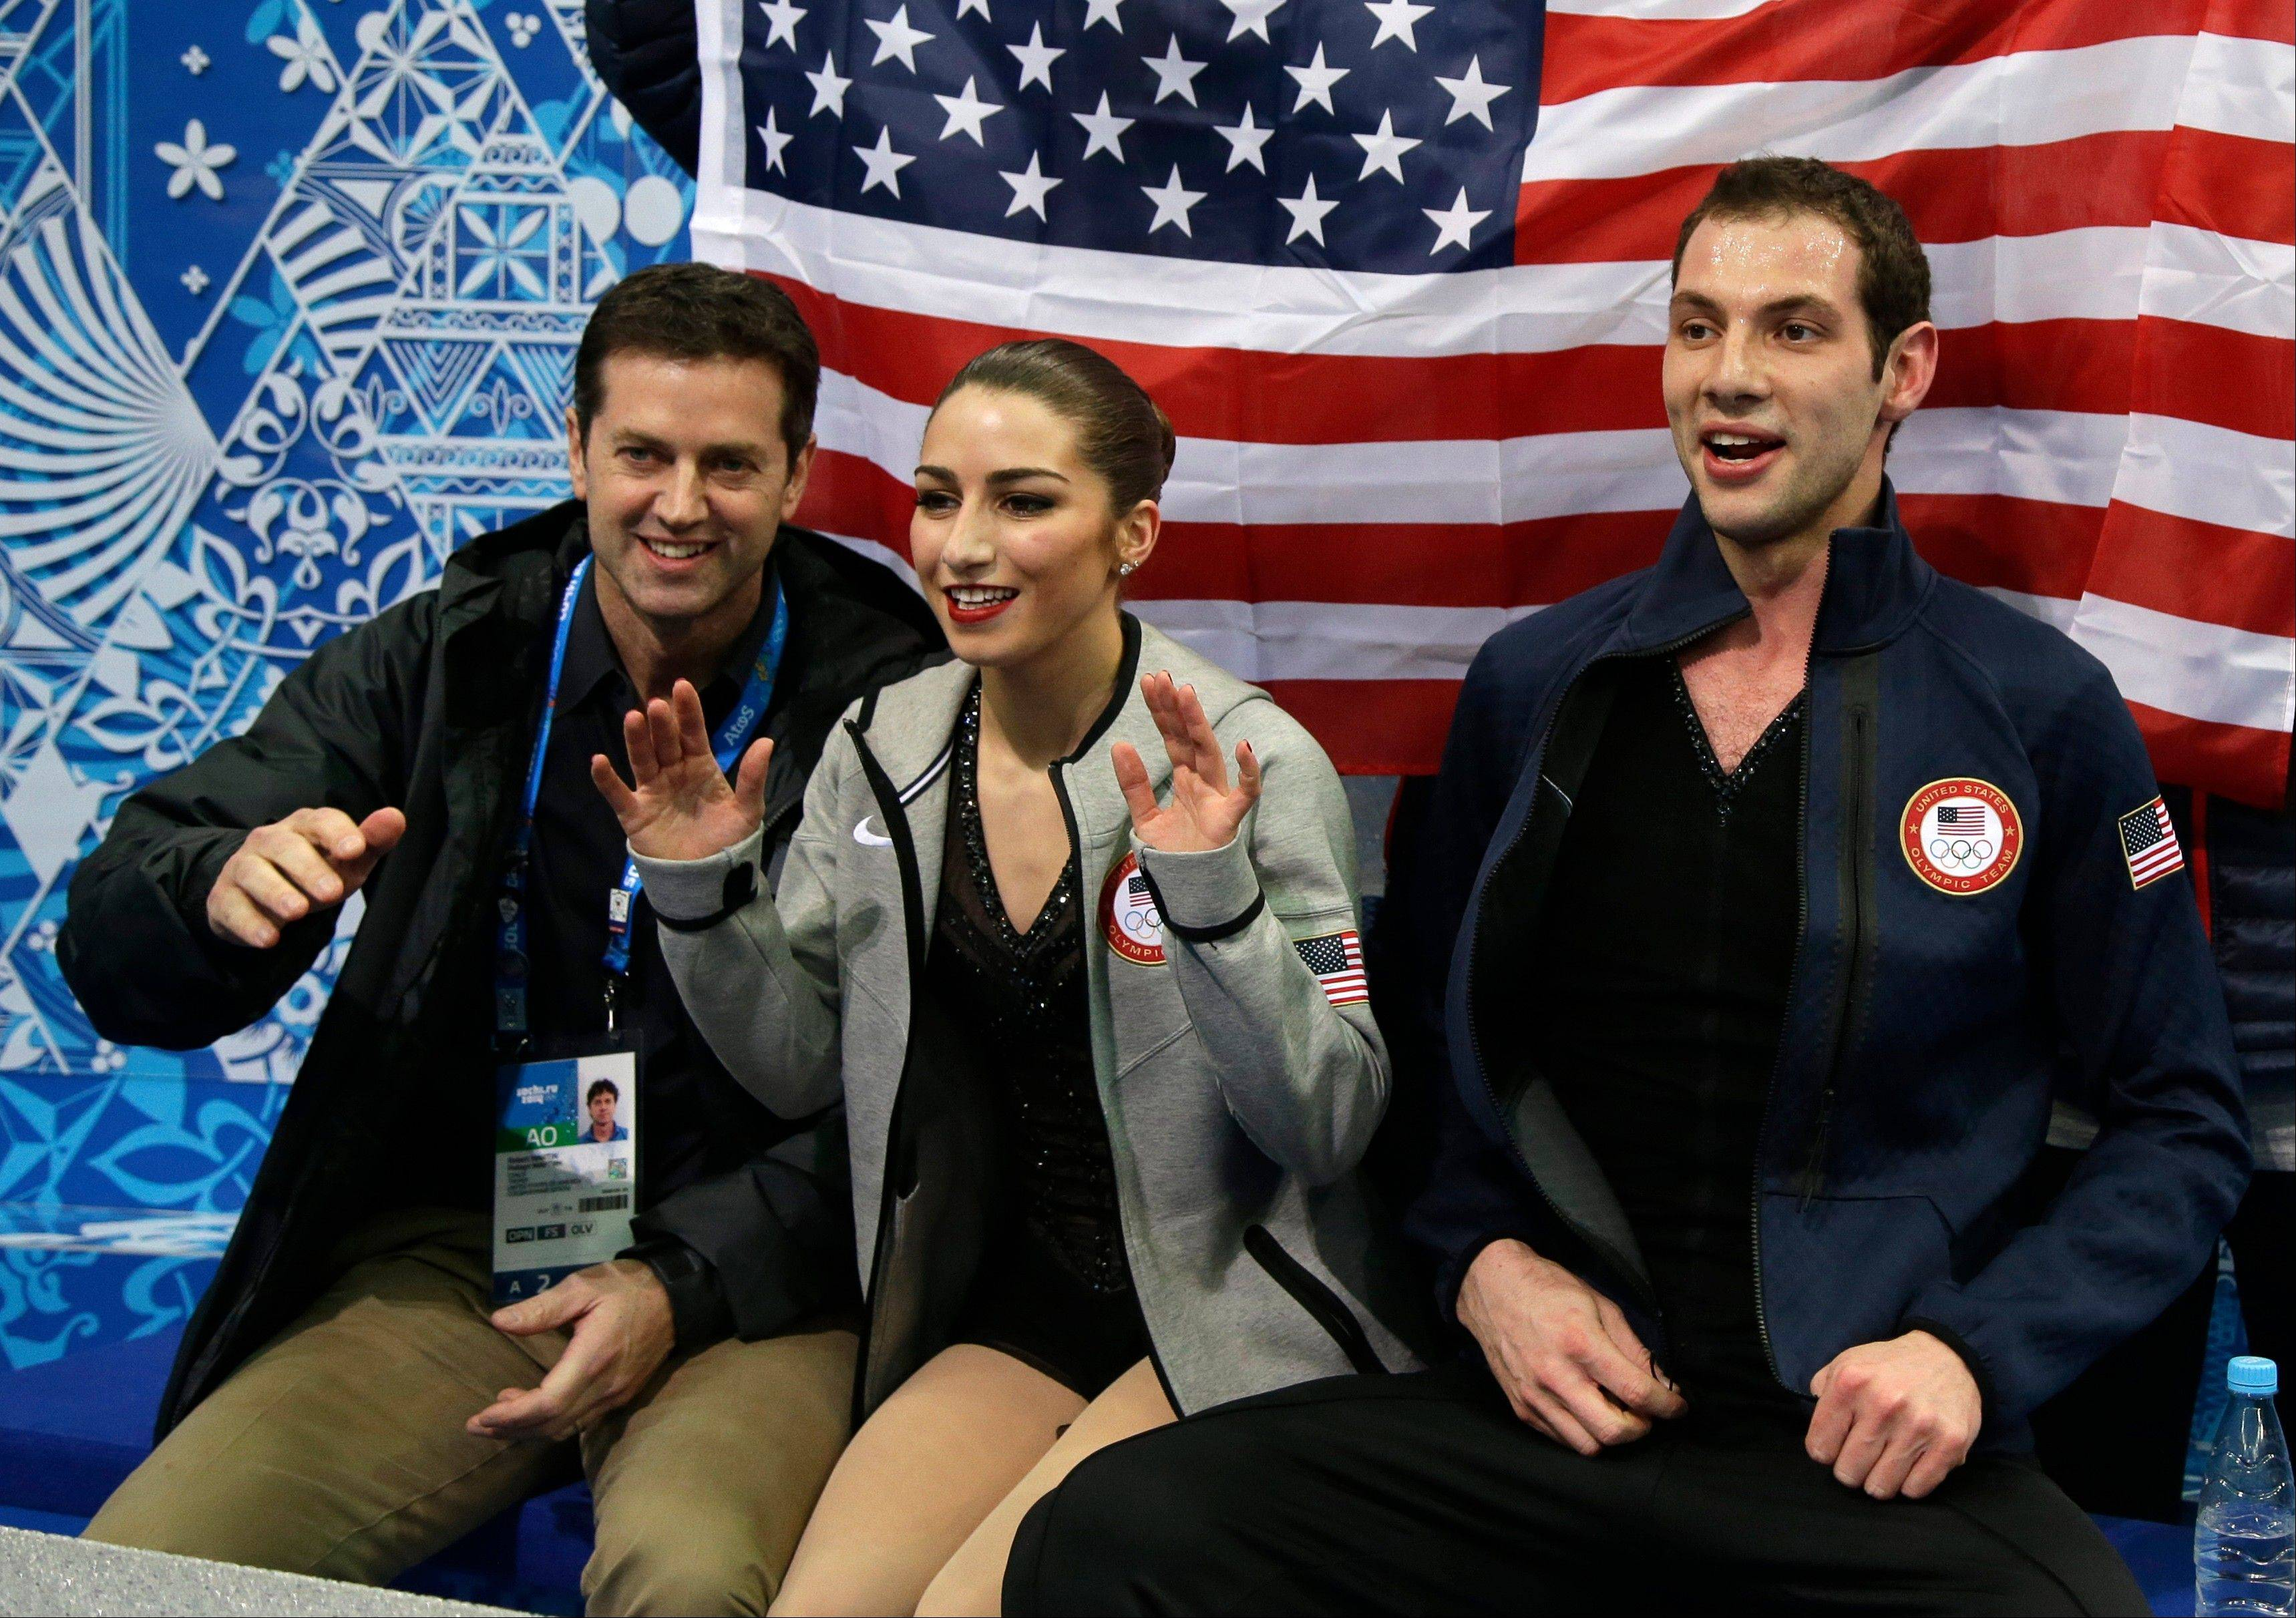 Marissa Castelli and Simon Shnapir of the United States wait for their results following the the team pairs short program figure skating competition at the Iceberg Skating Palace during the 2014 Winter Olympics.